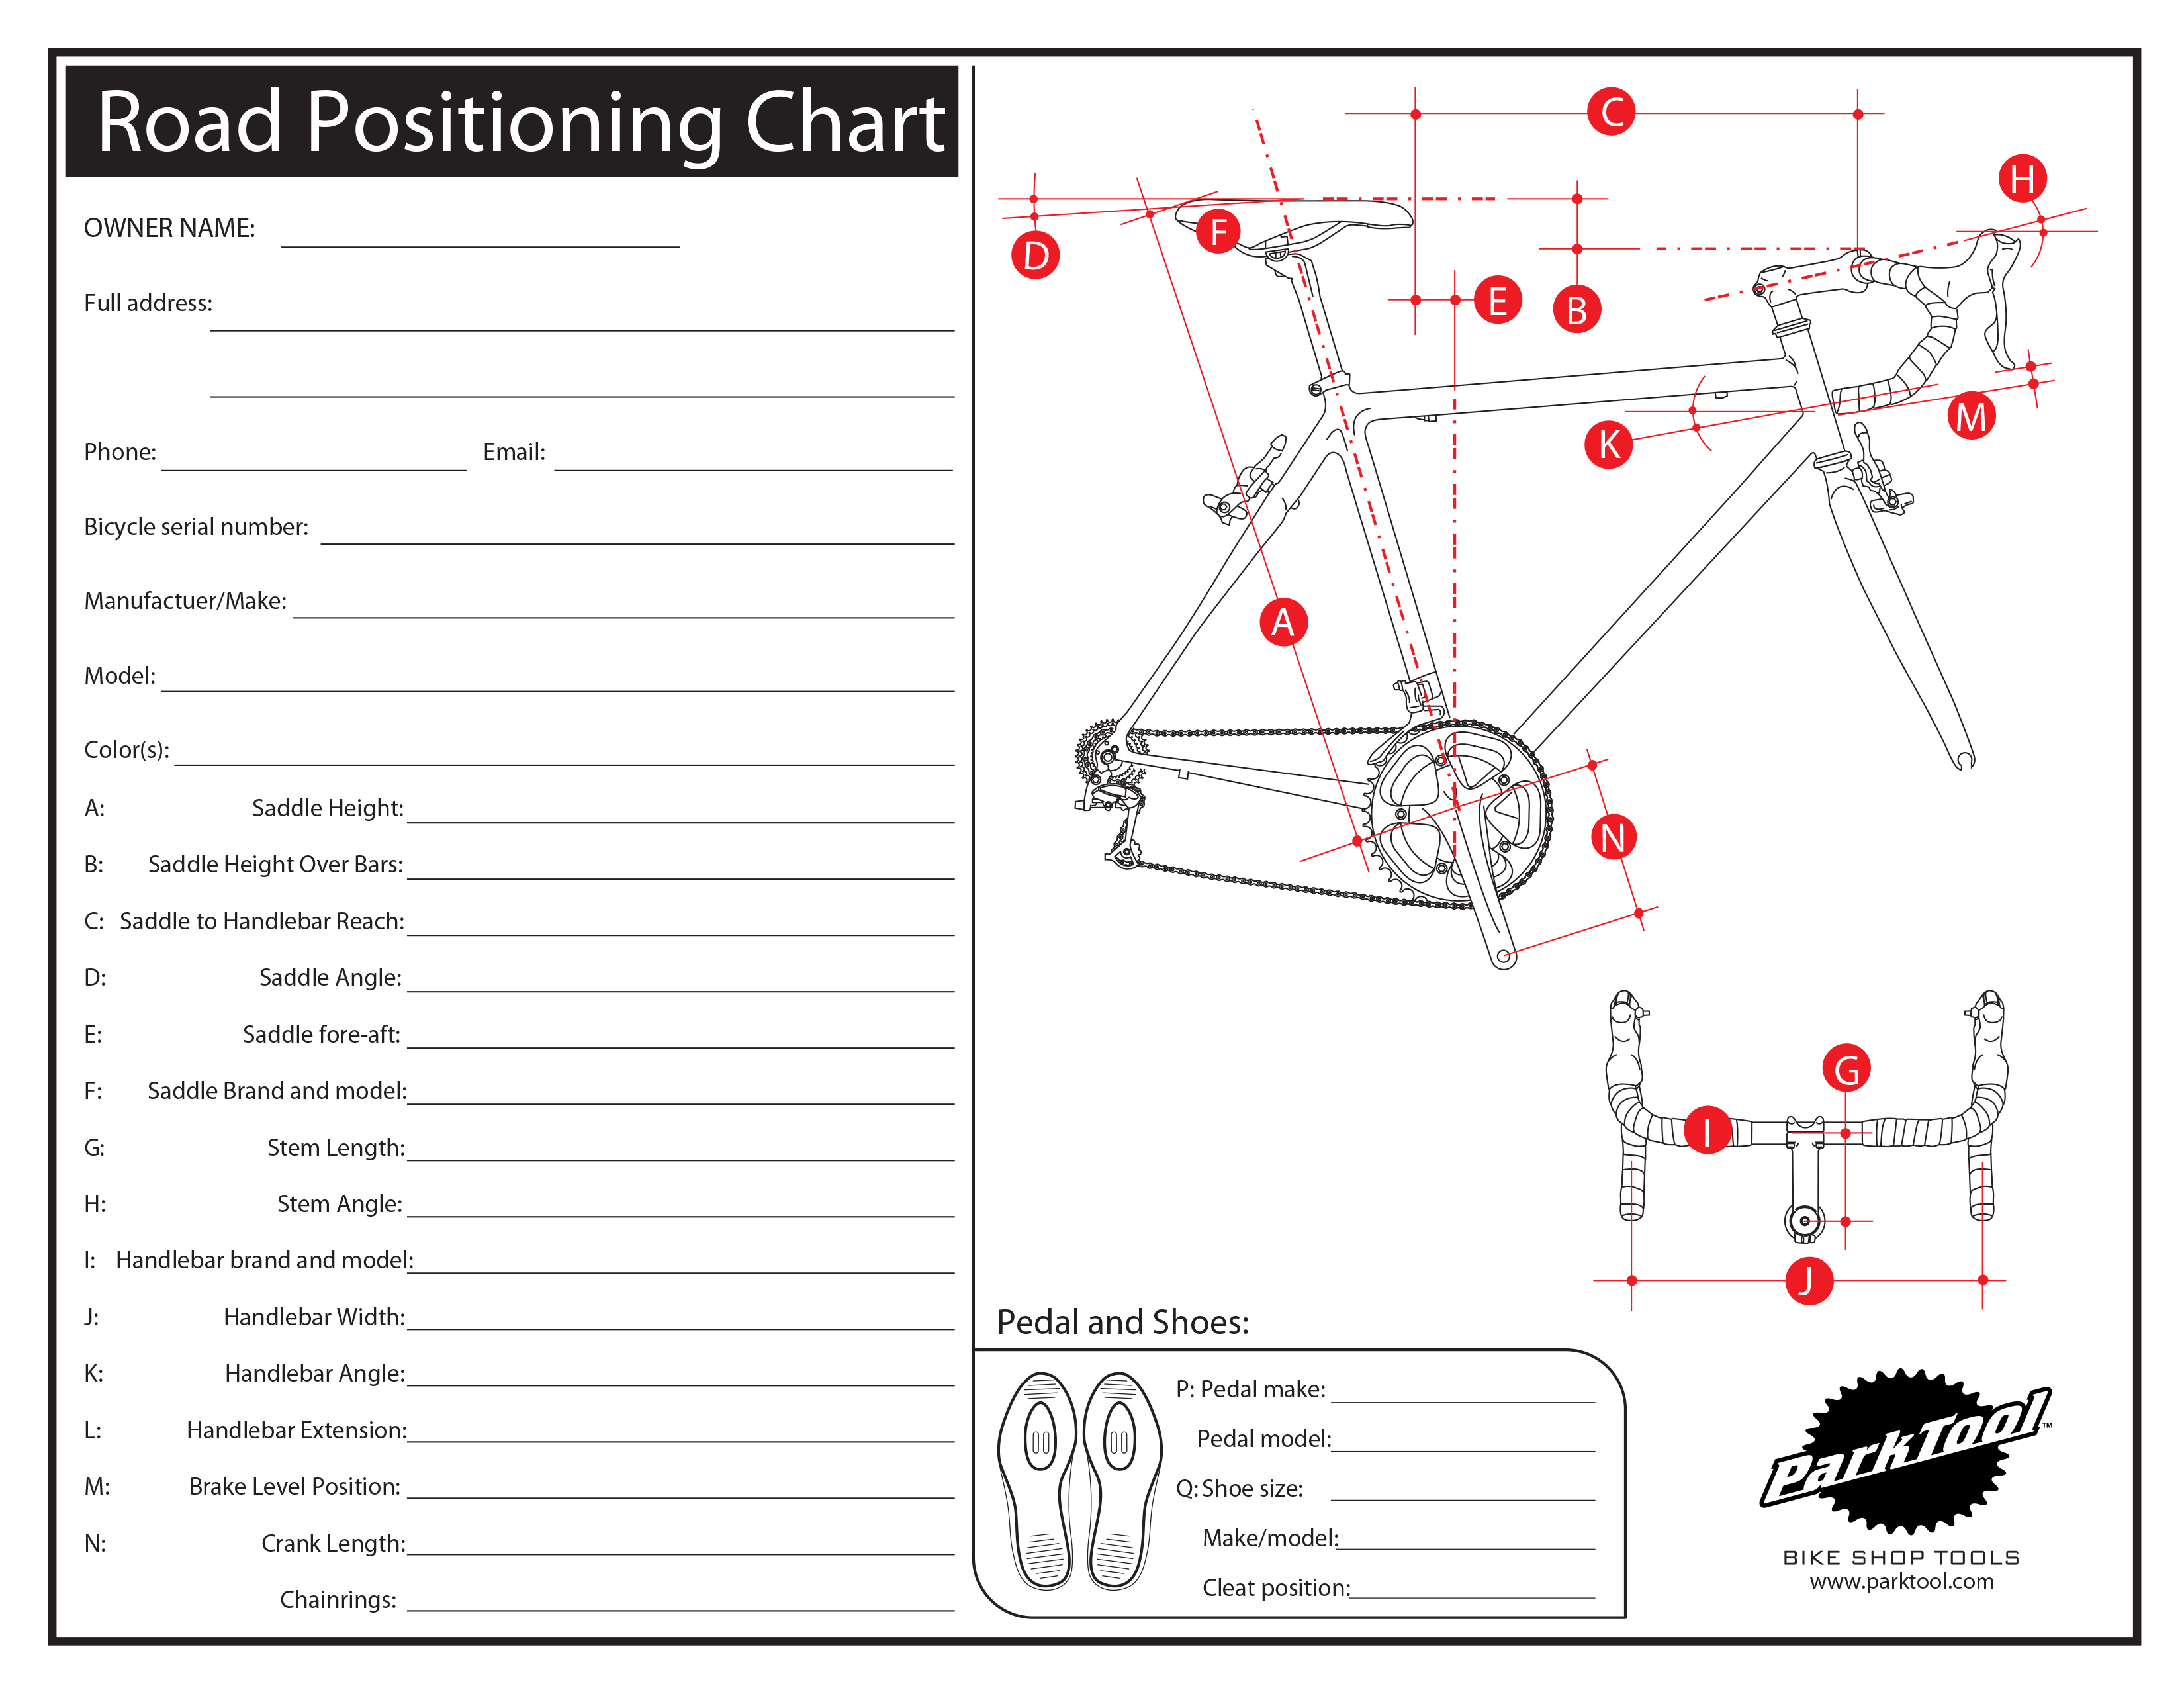 Road Positioning Chart